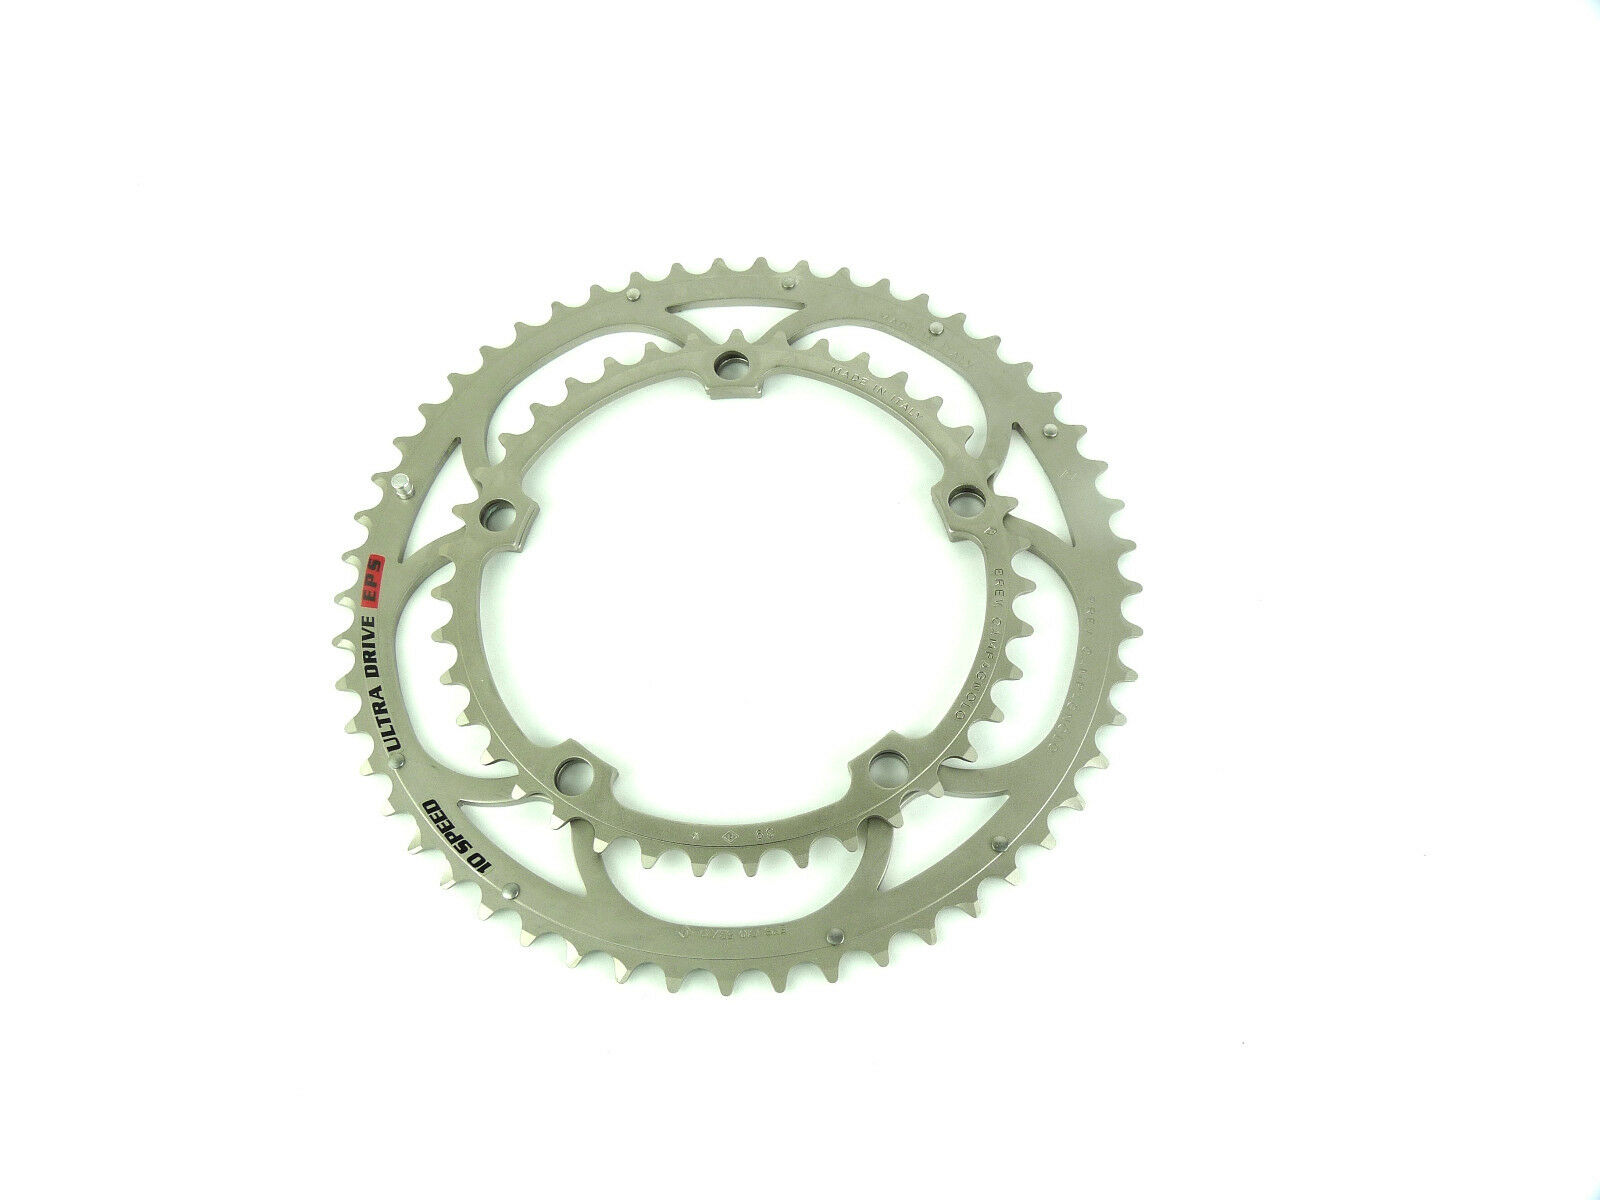 Campagnolo Record 10 speed Chainring set 53 39T  Road Bike Ultra Drive EPS NOS  great offers